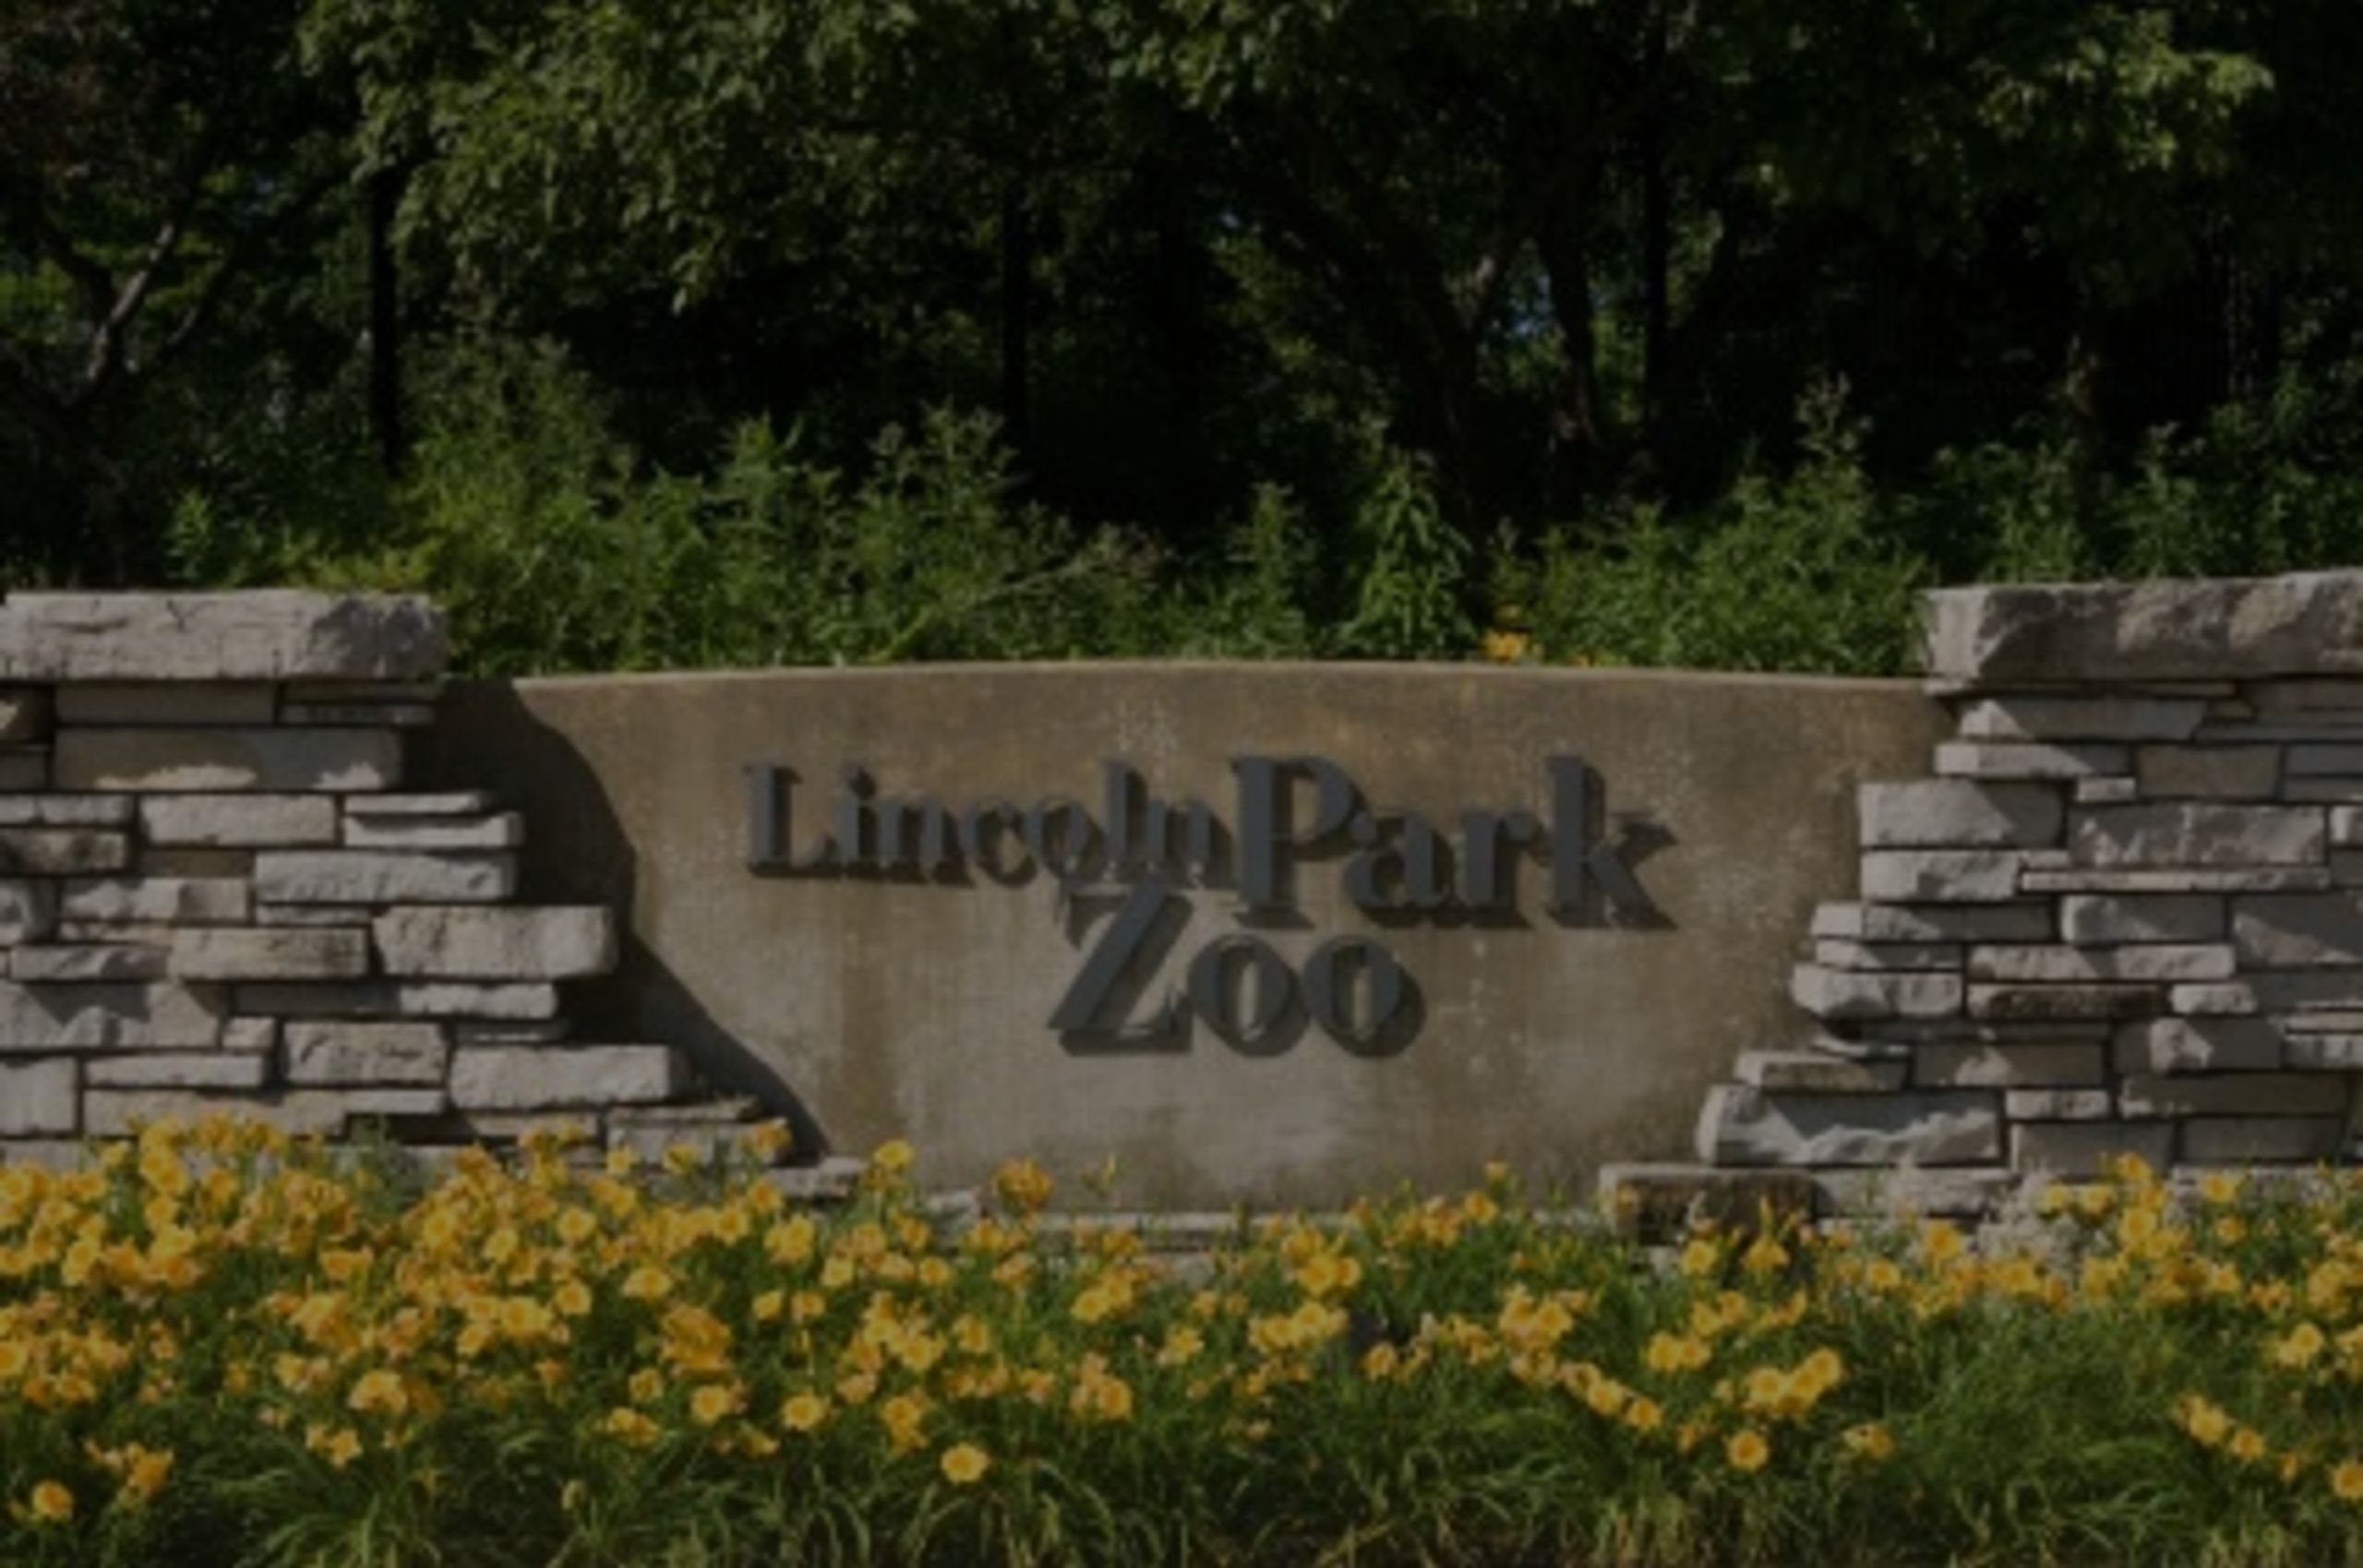 The Famous Lincoln Park Zoo